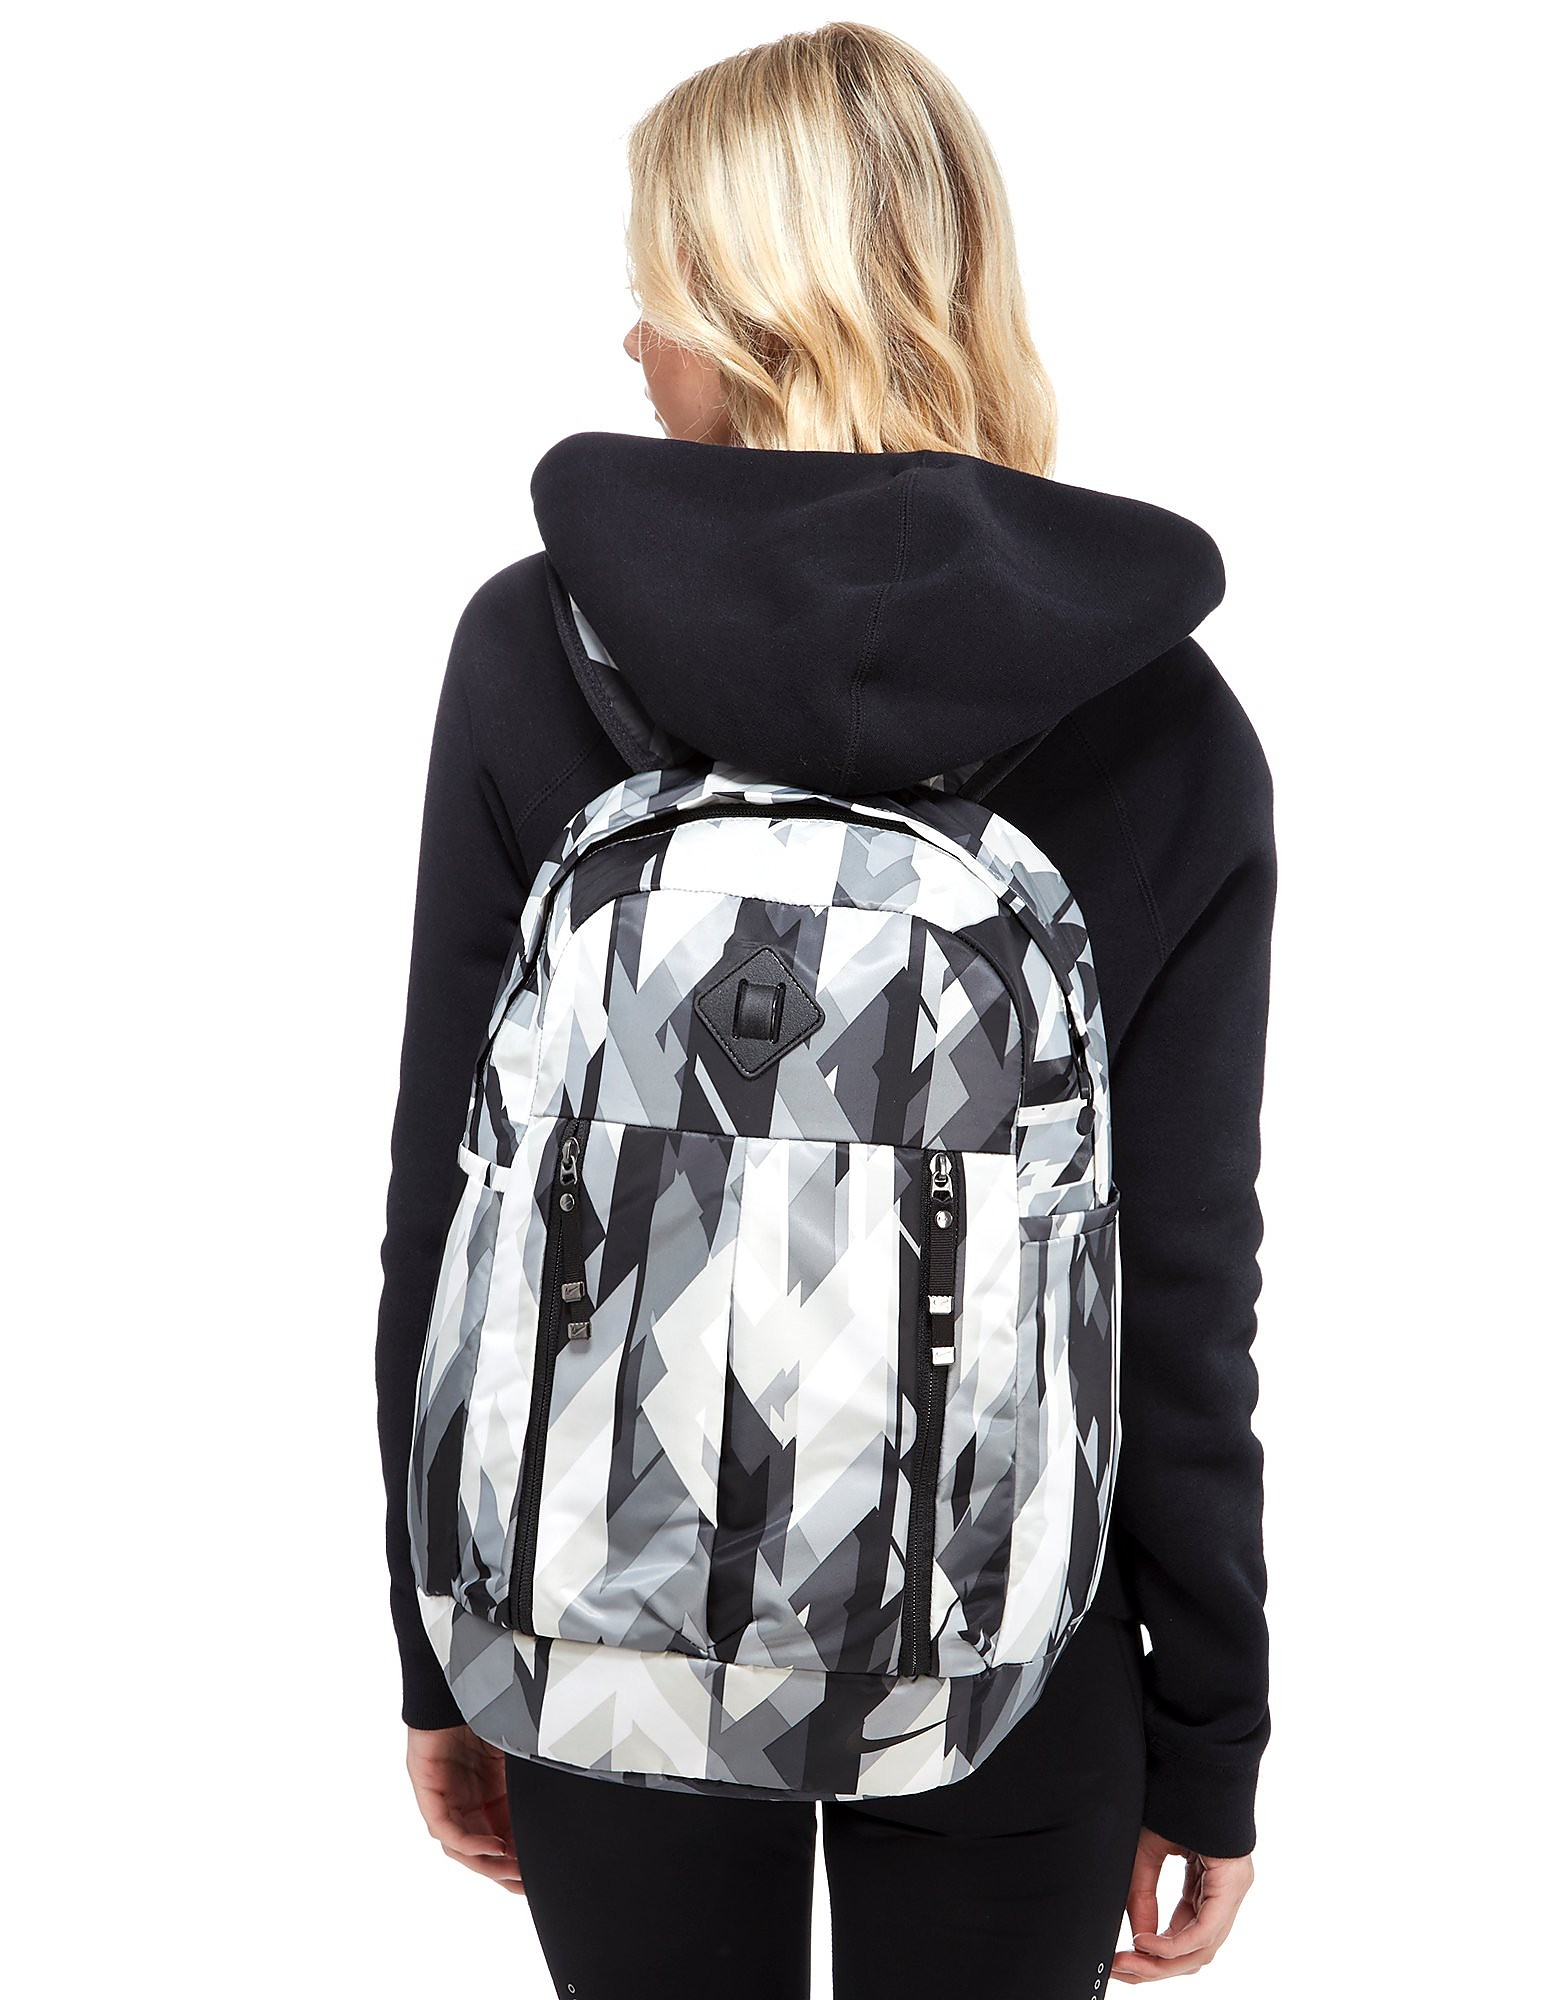 Nike Auralux Print Backpack